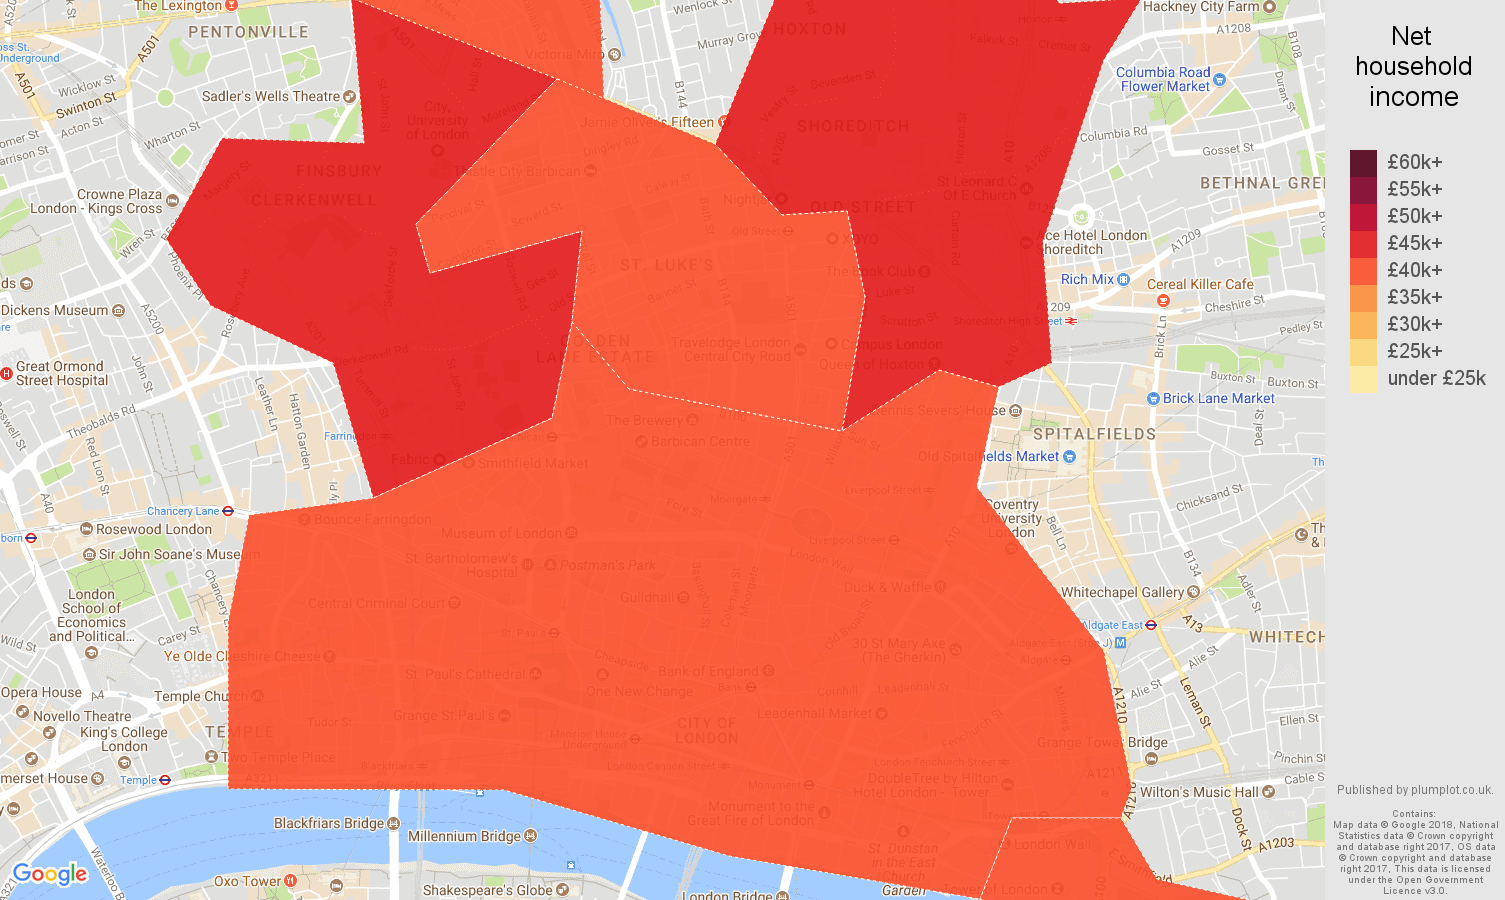 East Central London net household income map